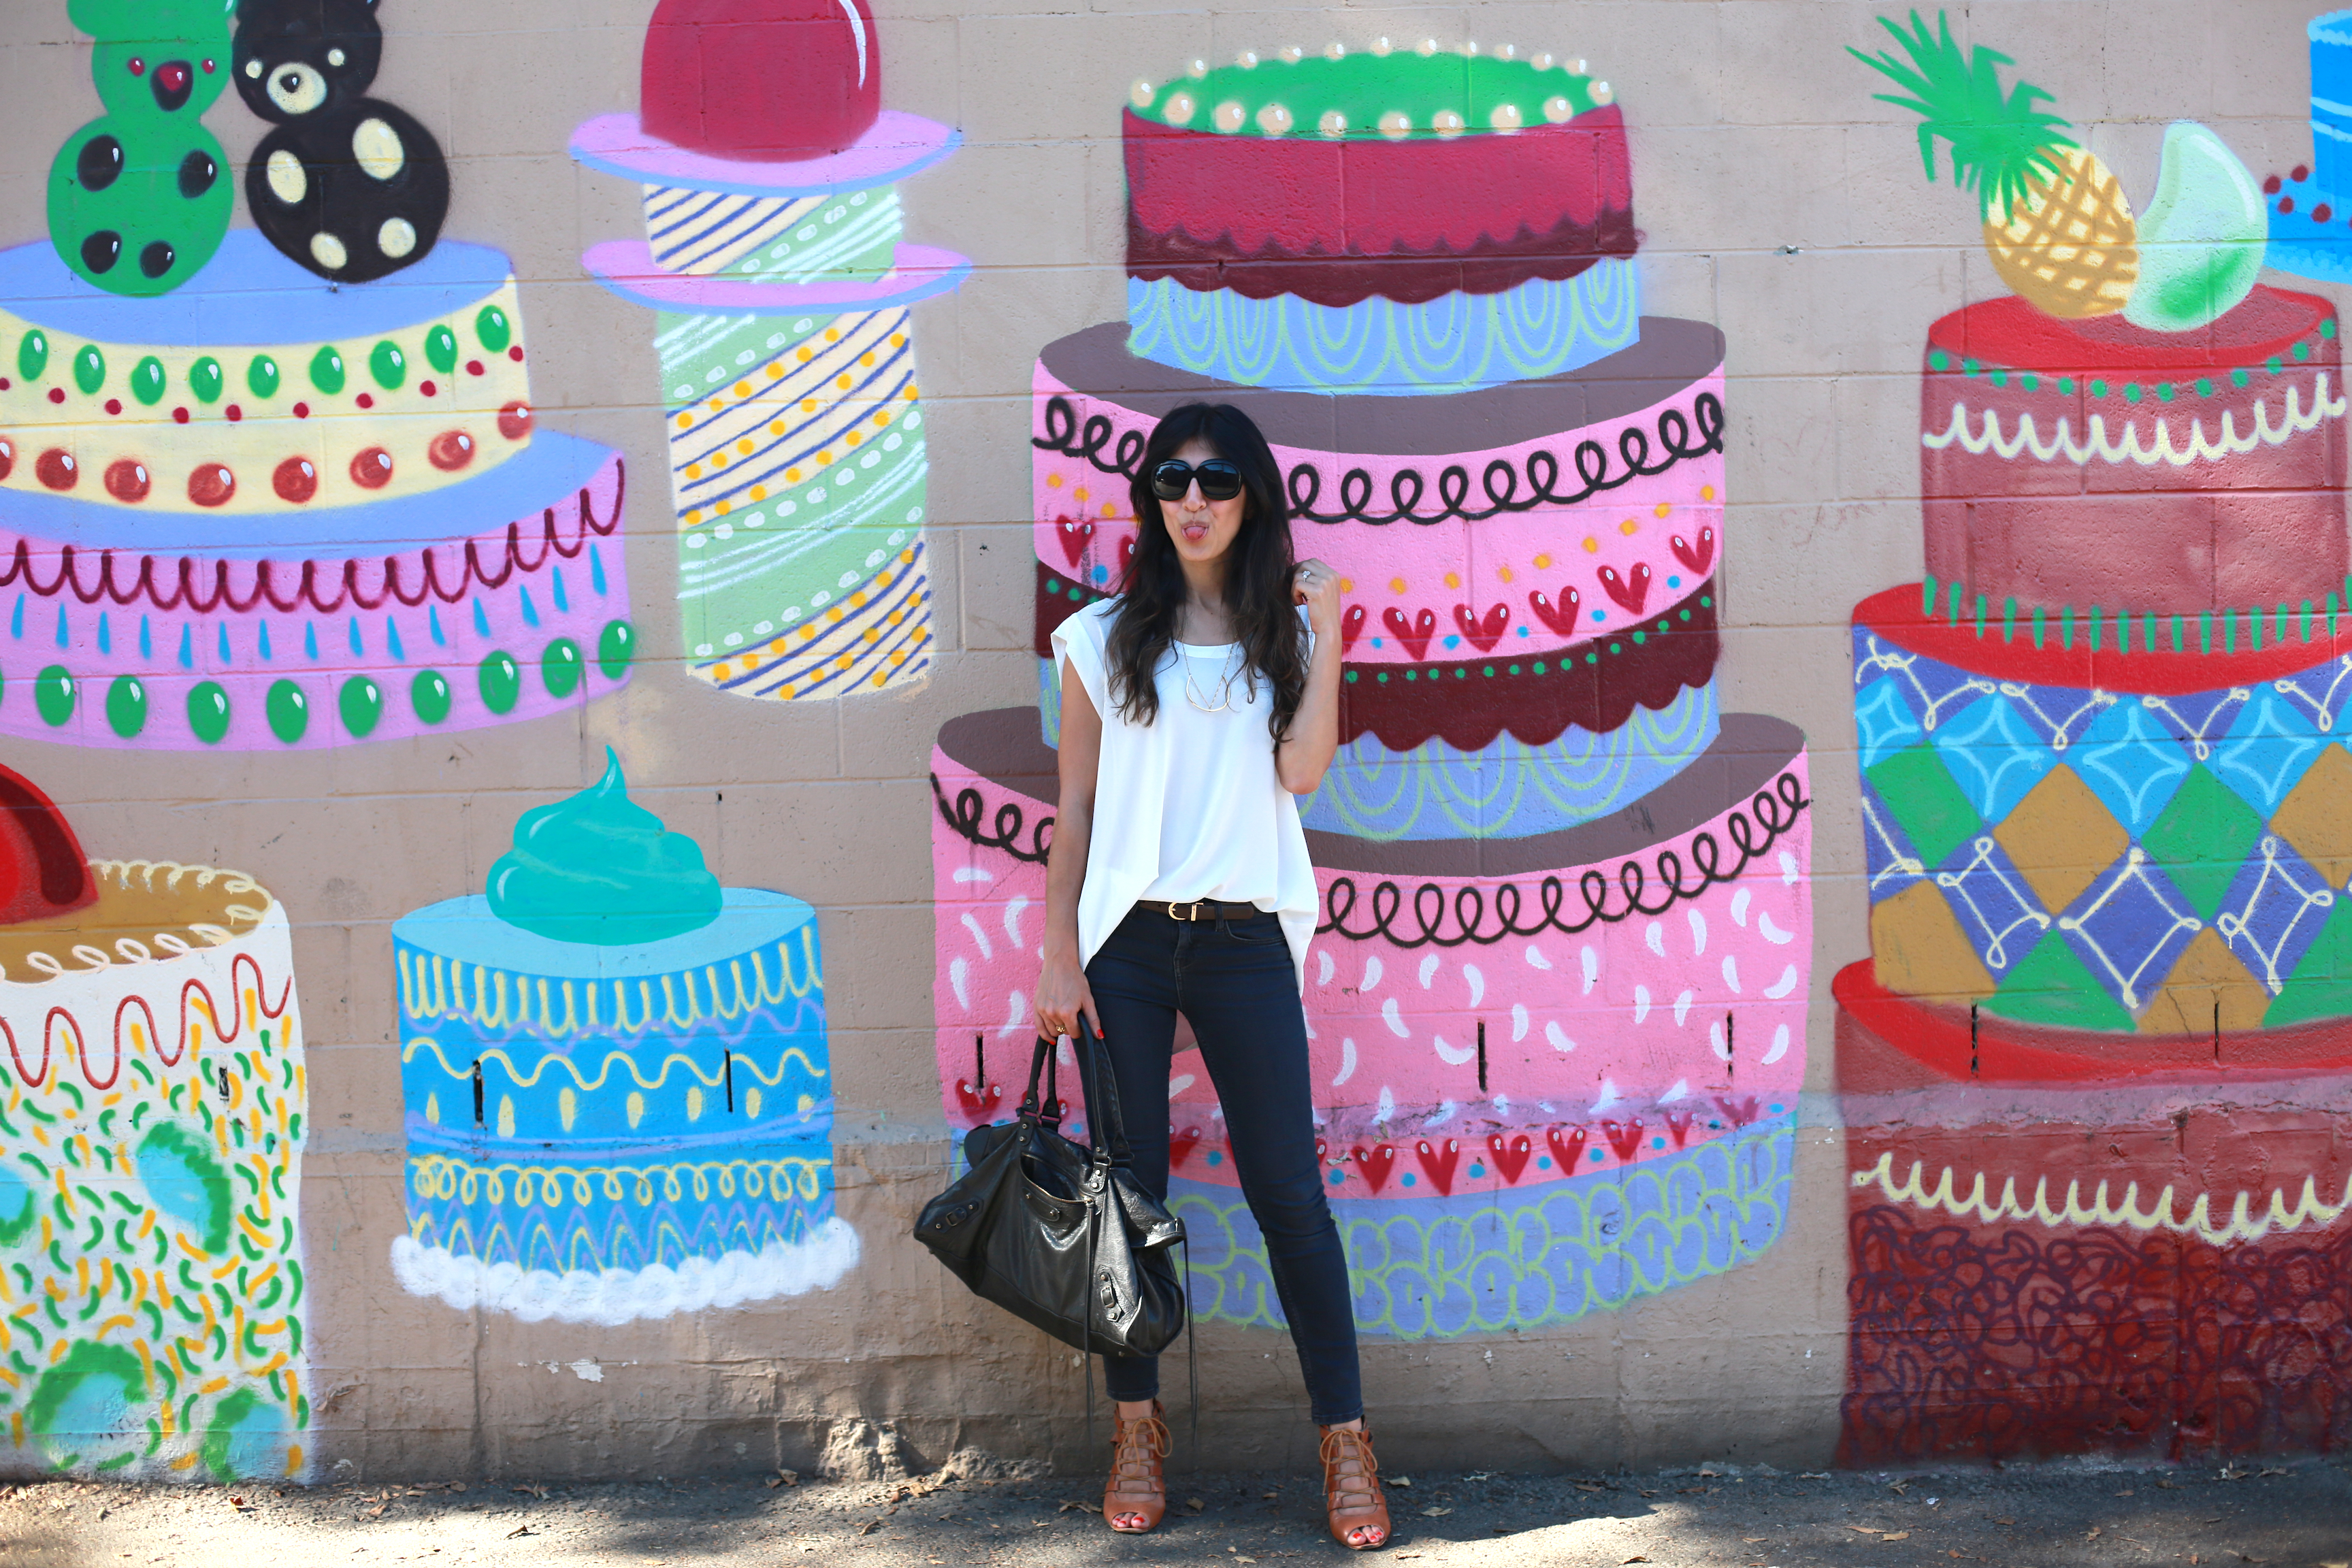 It's a cakewalk! NO wait - it's a cake WALL! (yes, I totally went there!)